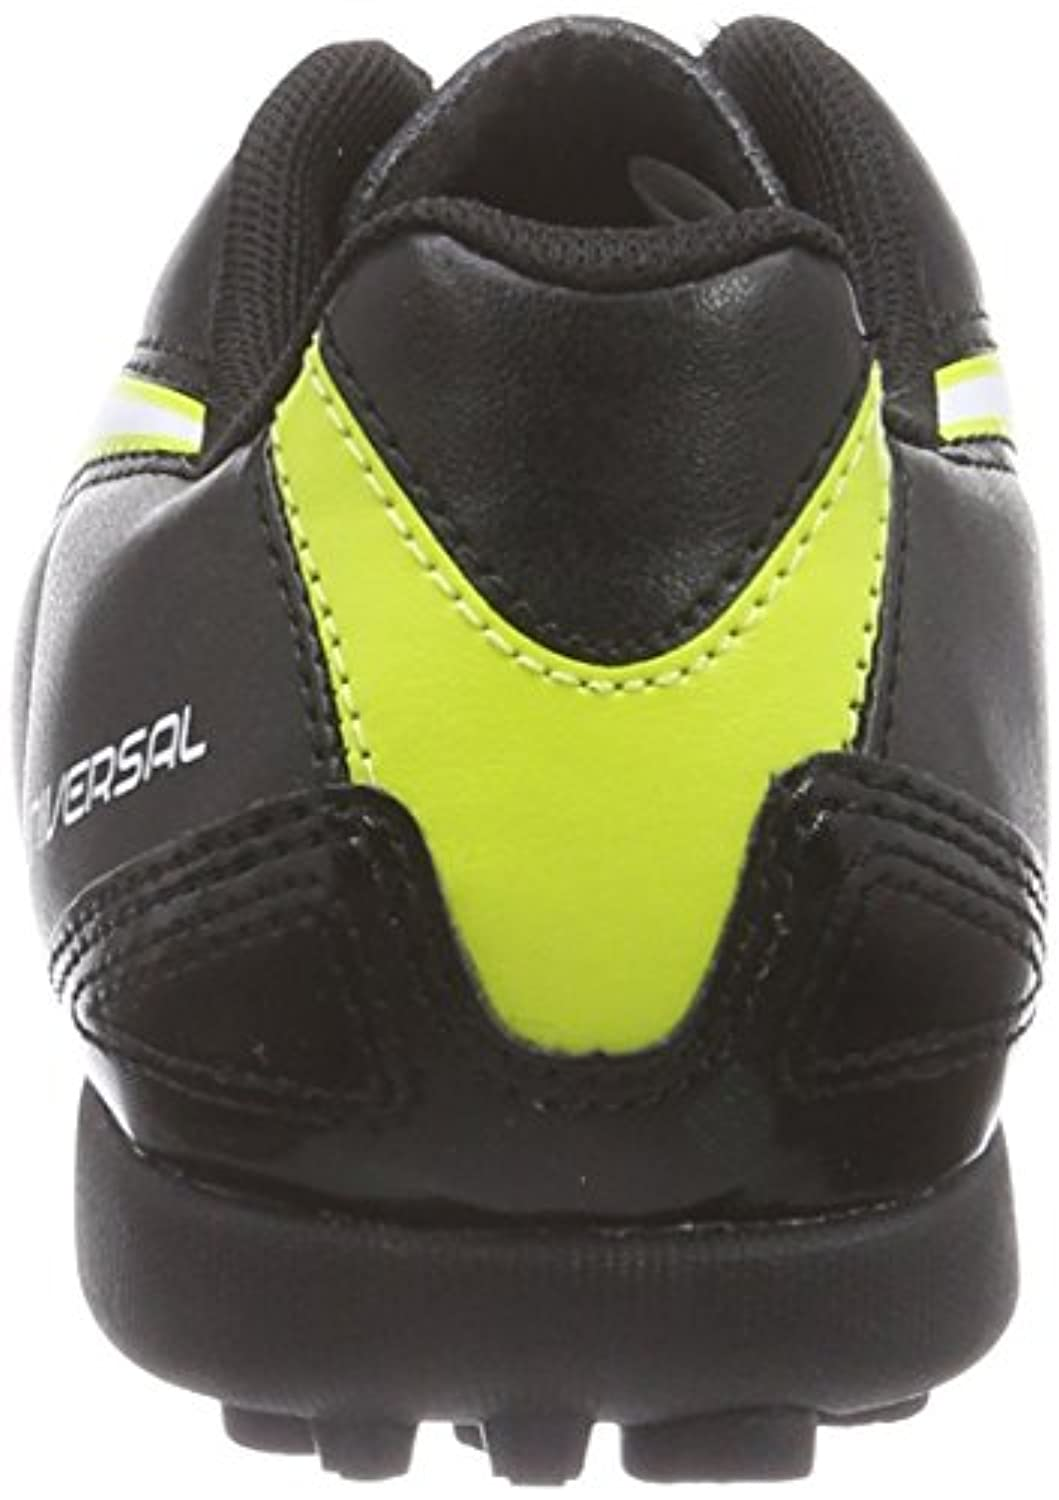 Puma Unisex Kids' Universal II TT Jr Football boots (training) Black Size: 2 UK